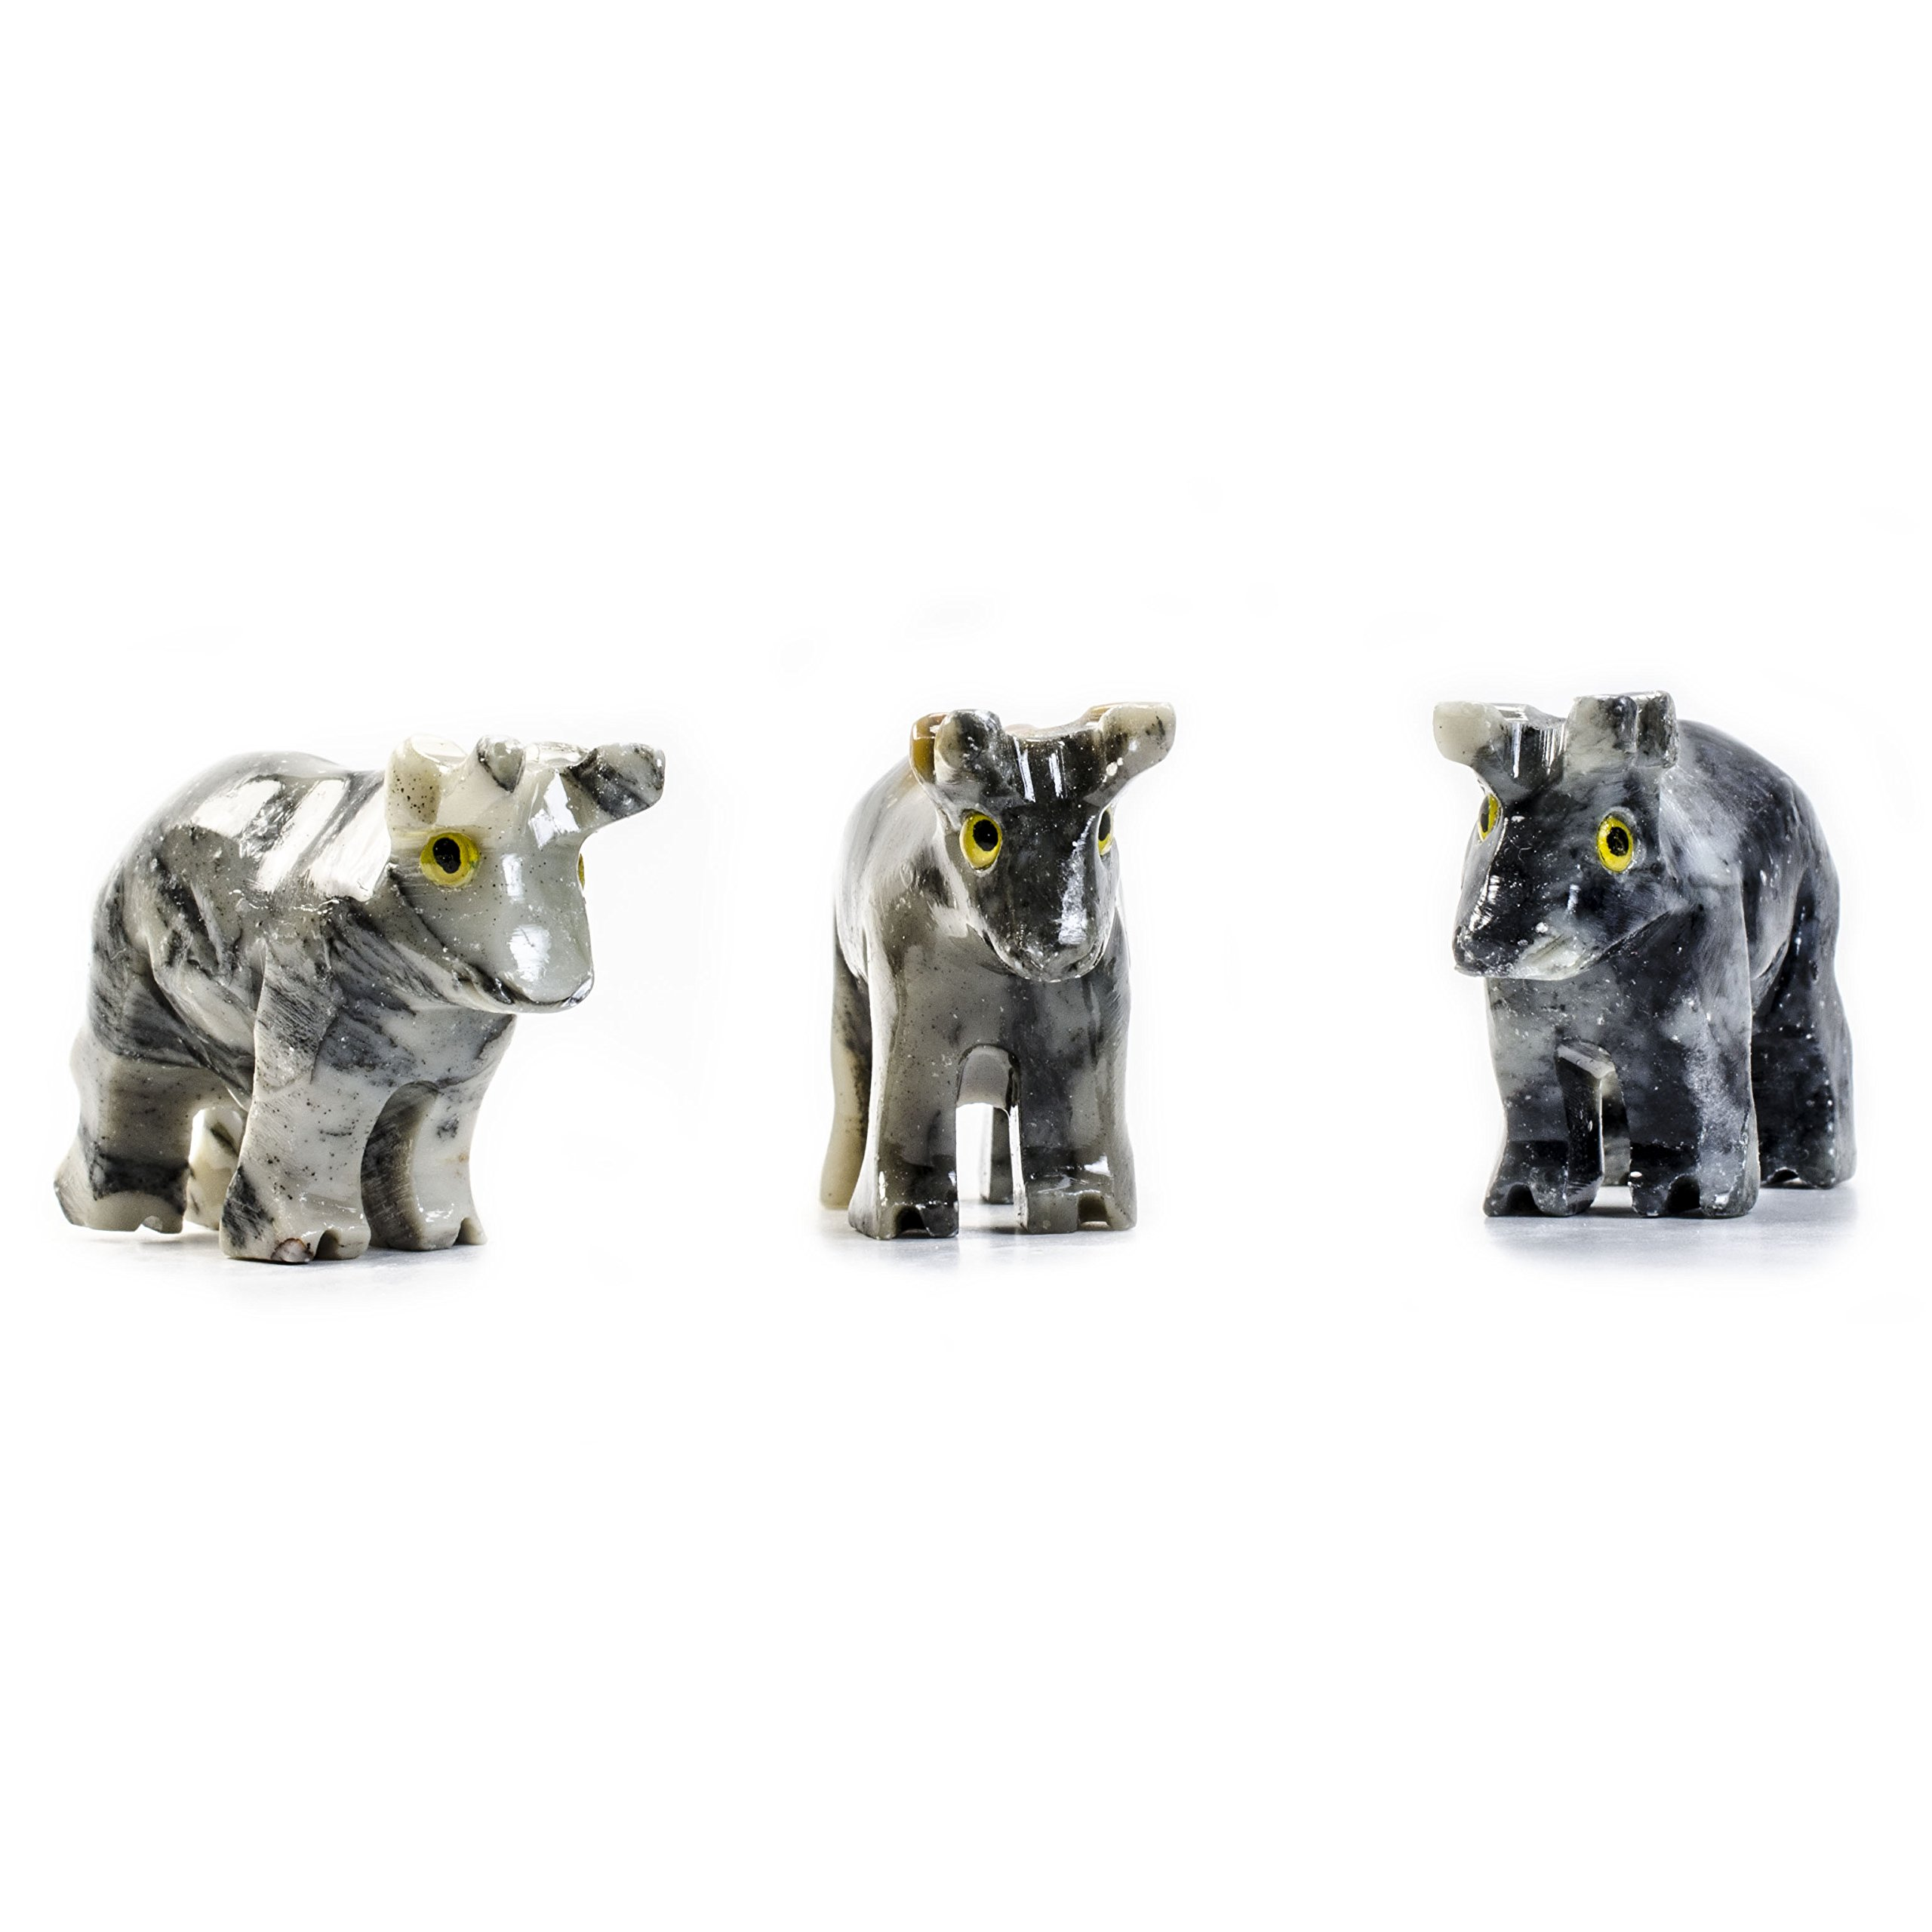 Digging Dolls : 10 pcs Artisan Bull Collectable Animal Figurine - Party Favors, Stocking Stuffers, Gifts, Collecting and More!